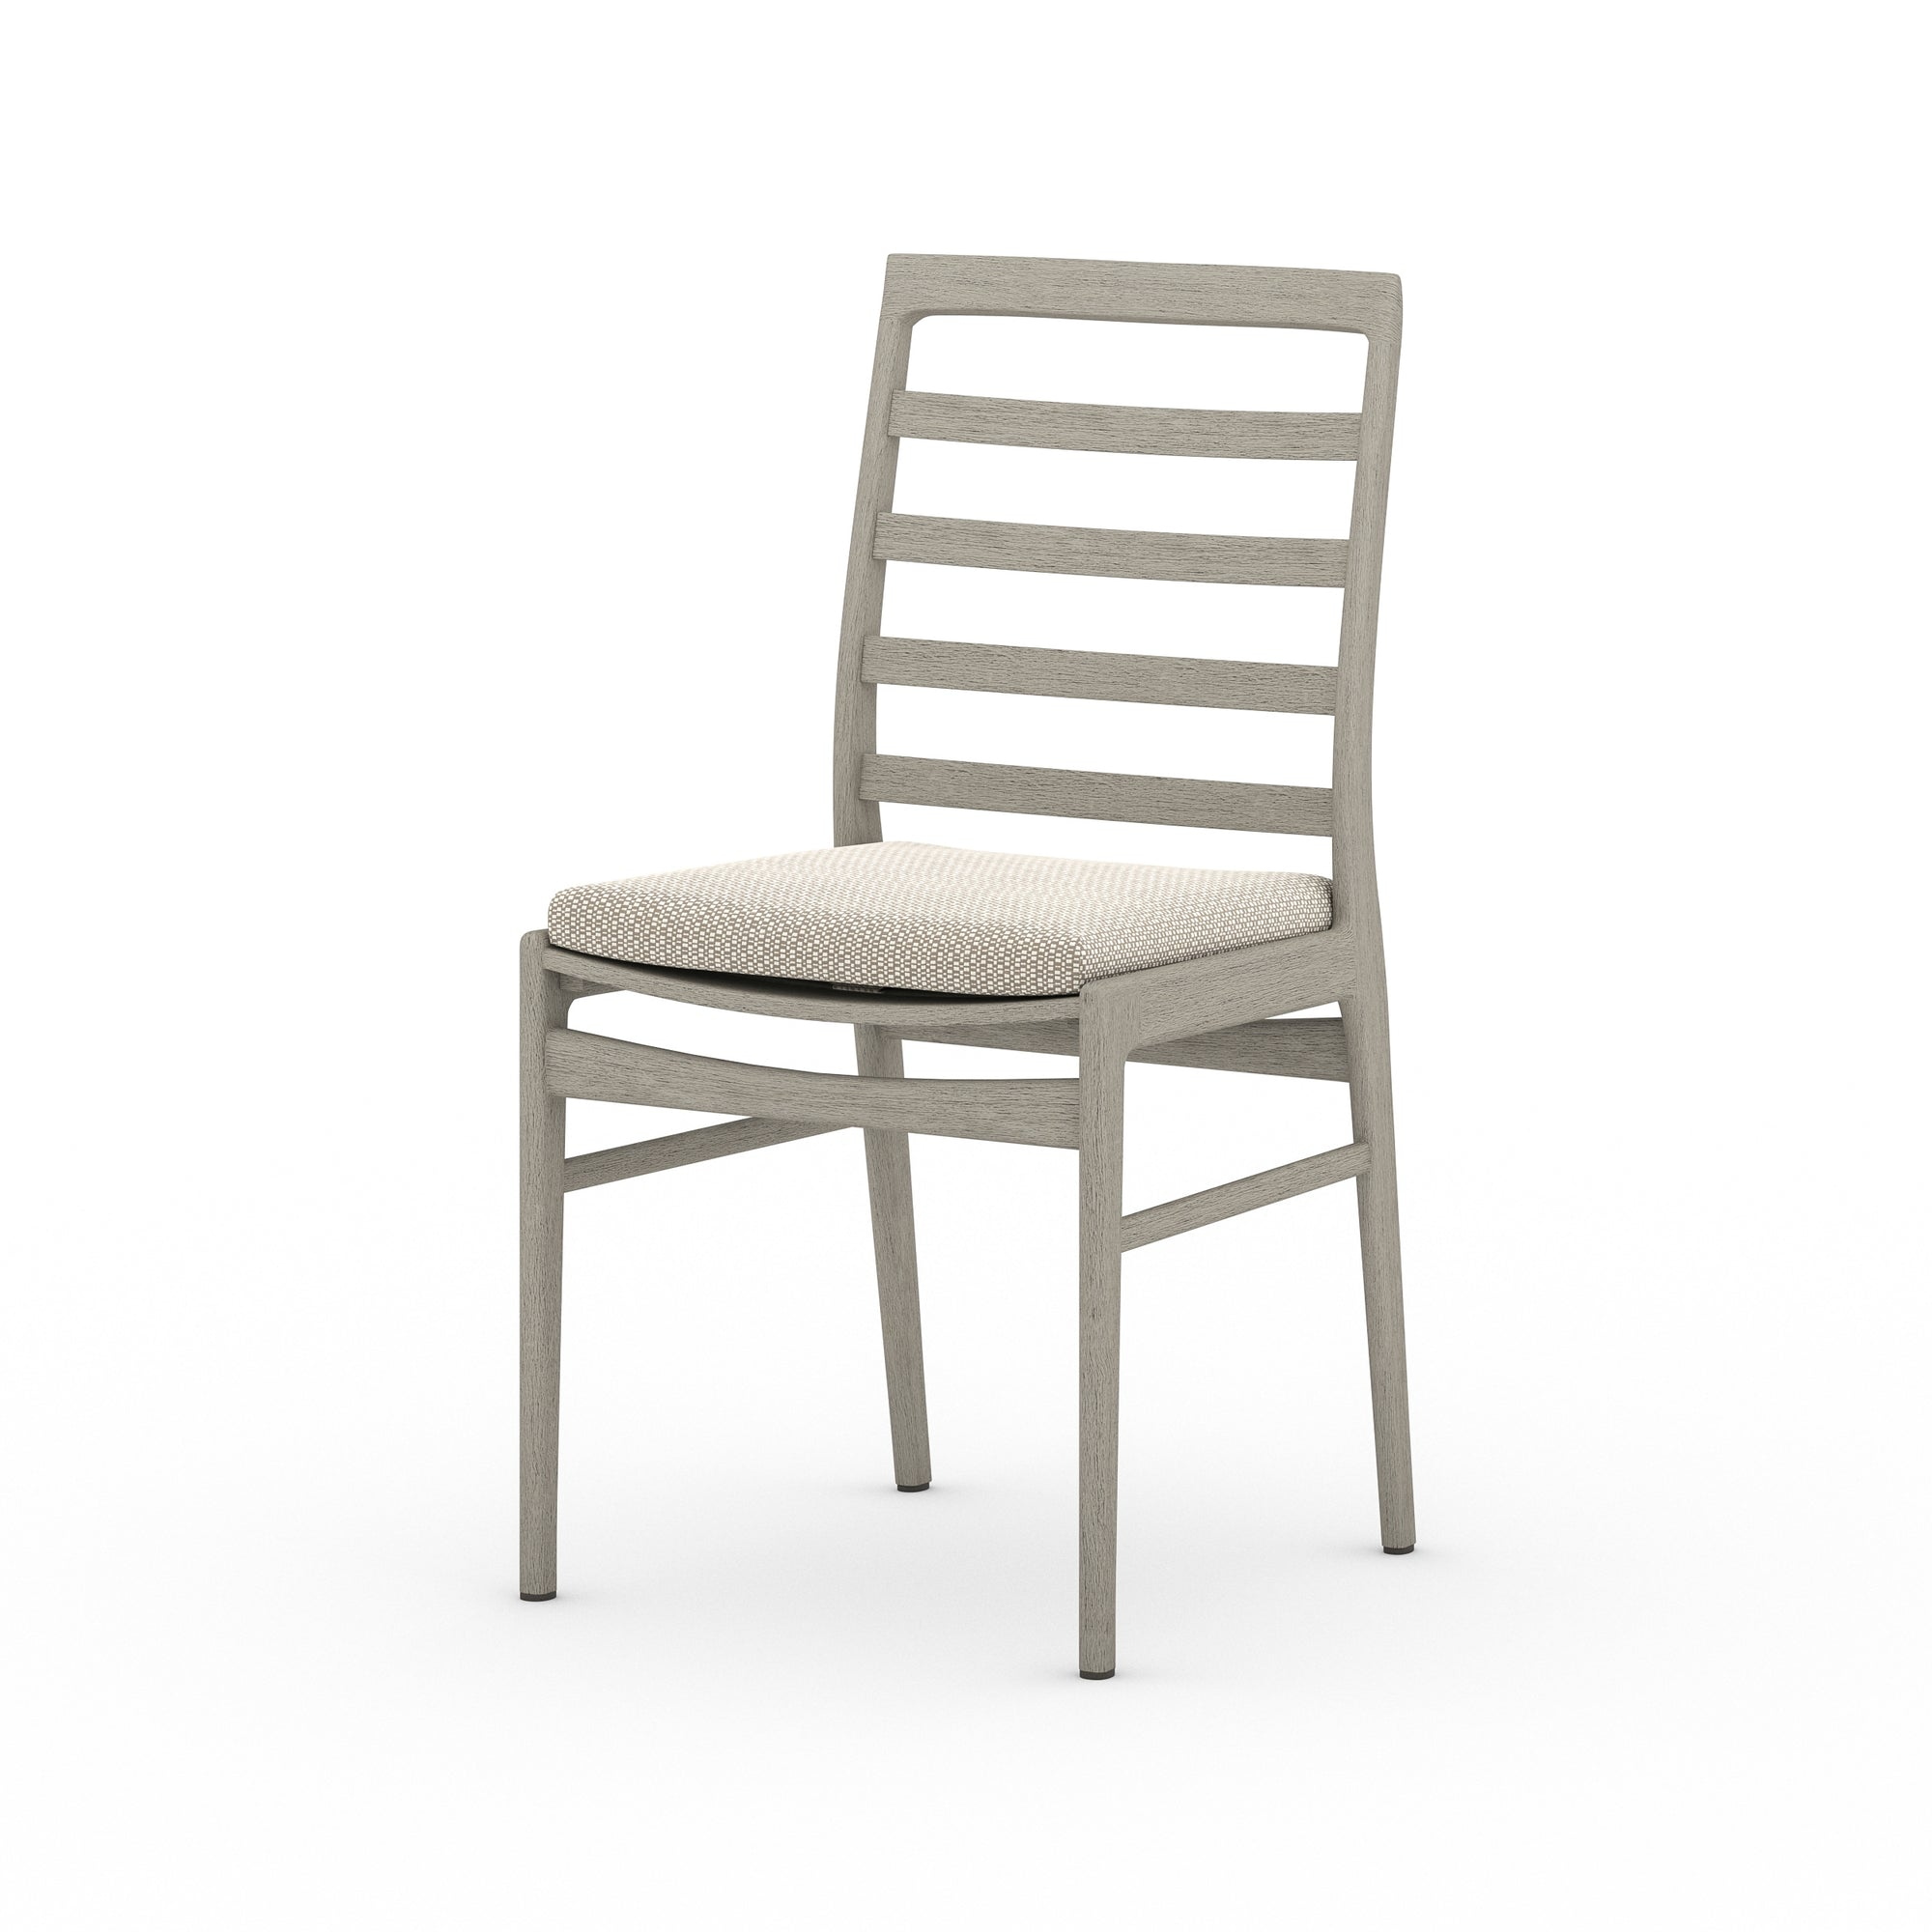 Linnet Outdoor Dining Chair - Grey/Sand